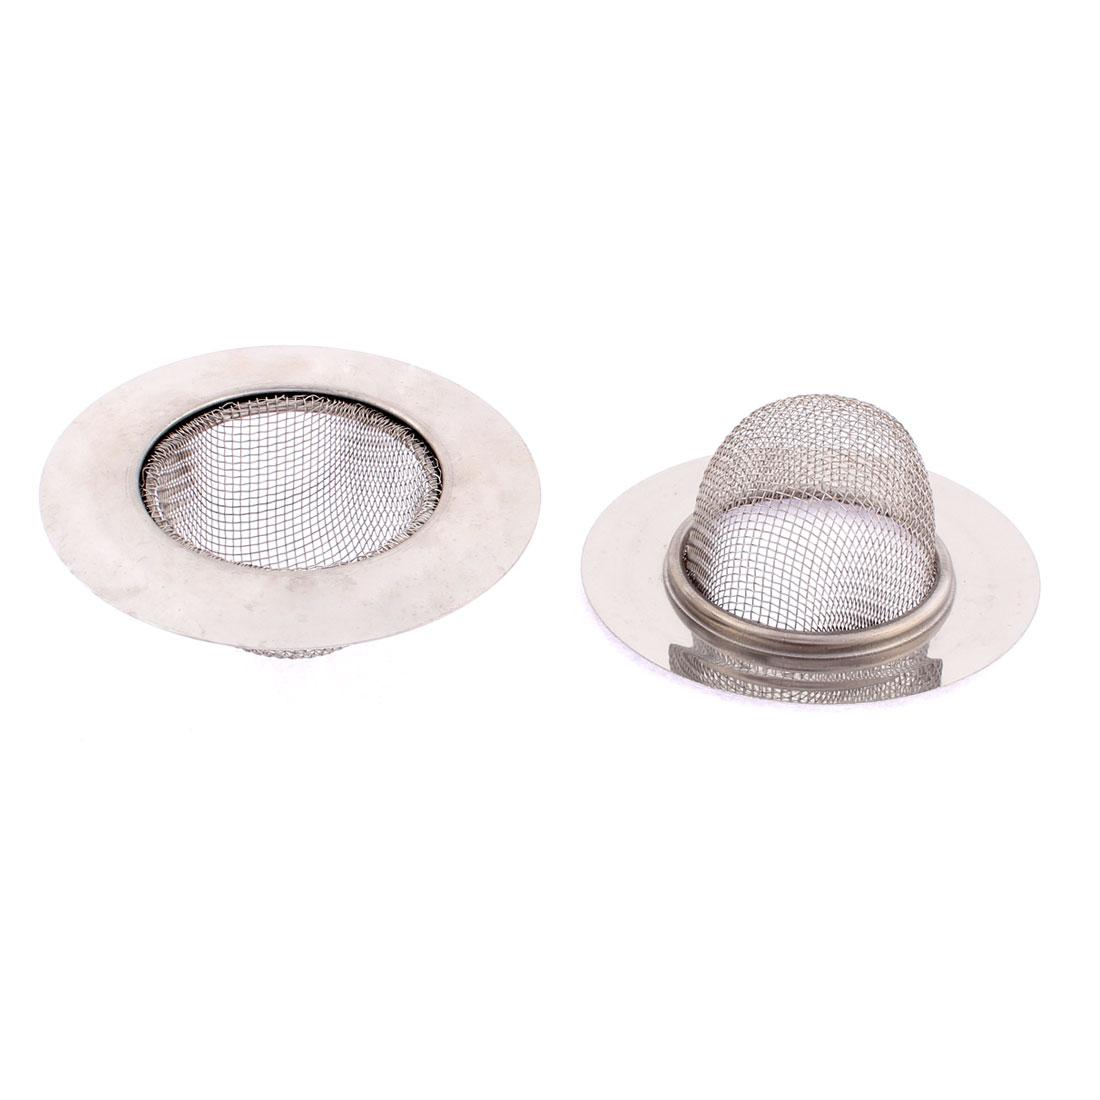 Bathroom Stainless Steel Basin Wire Mesh Sink Strainer 90mm Dia 2 Pcs